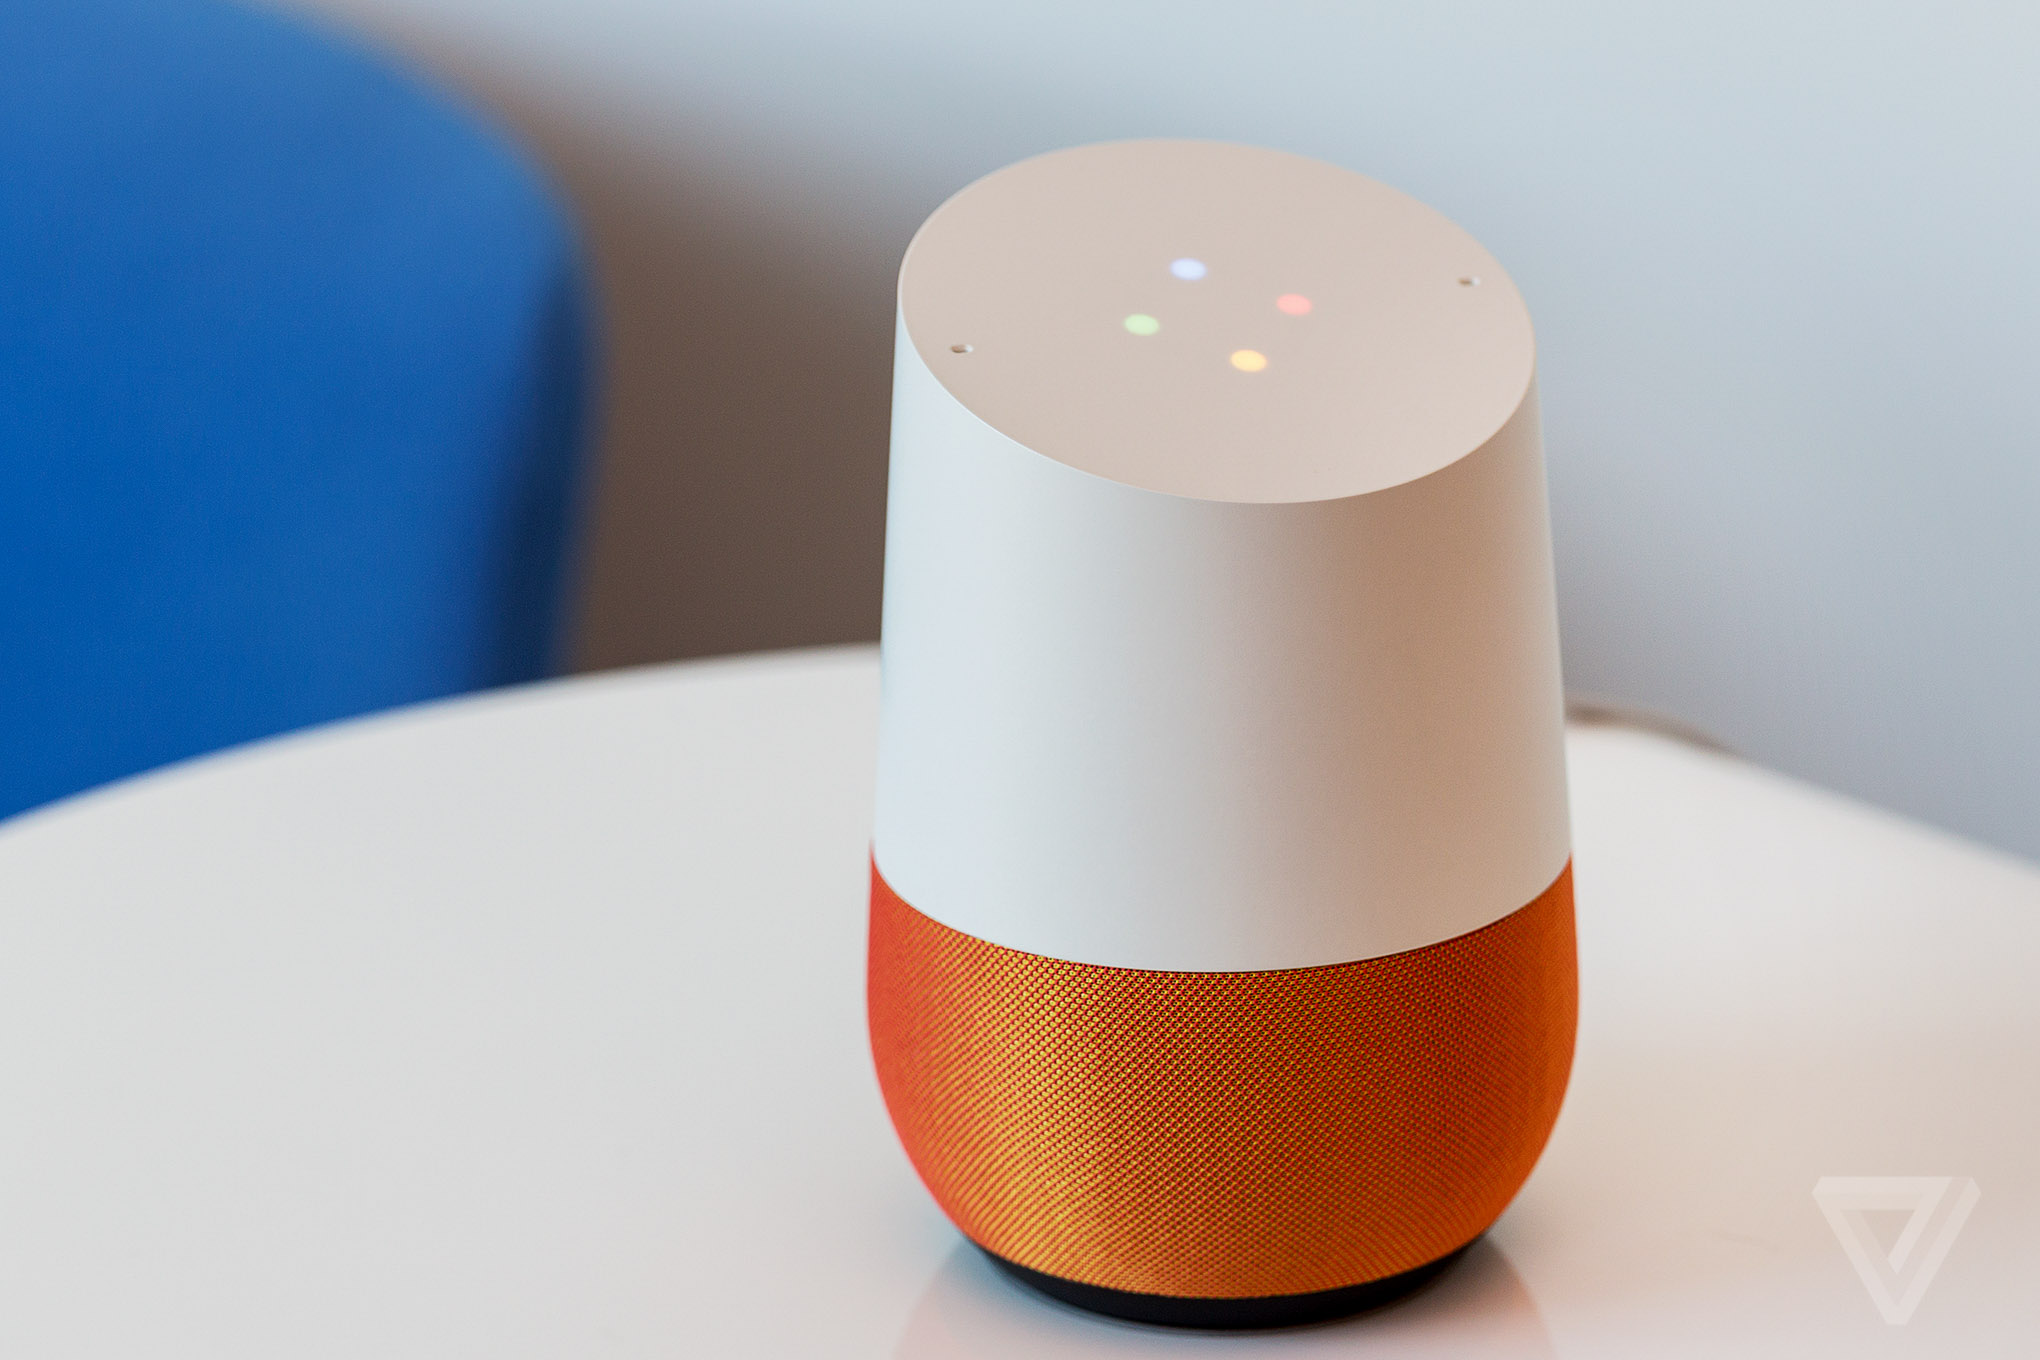 google_home_lead-0-0